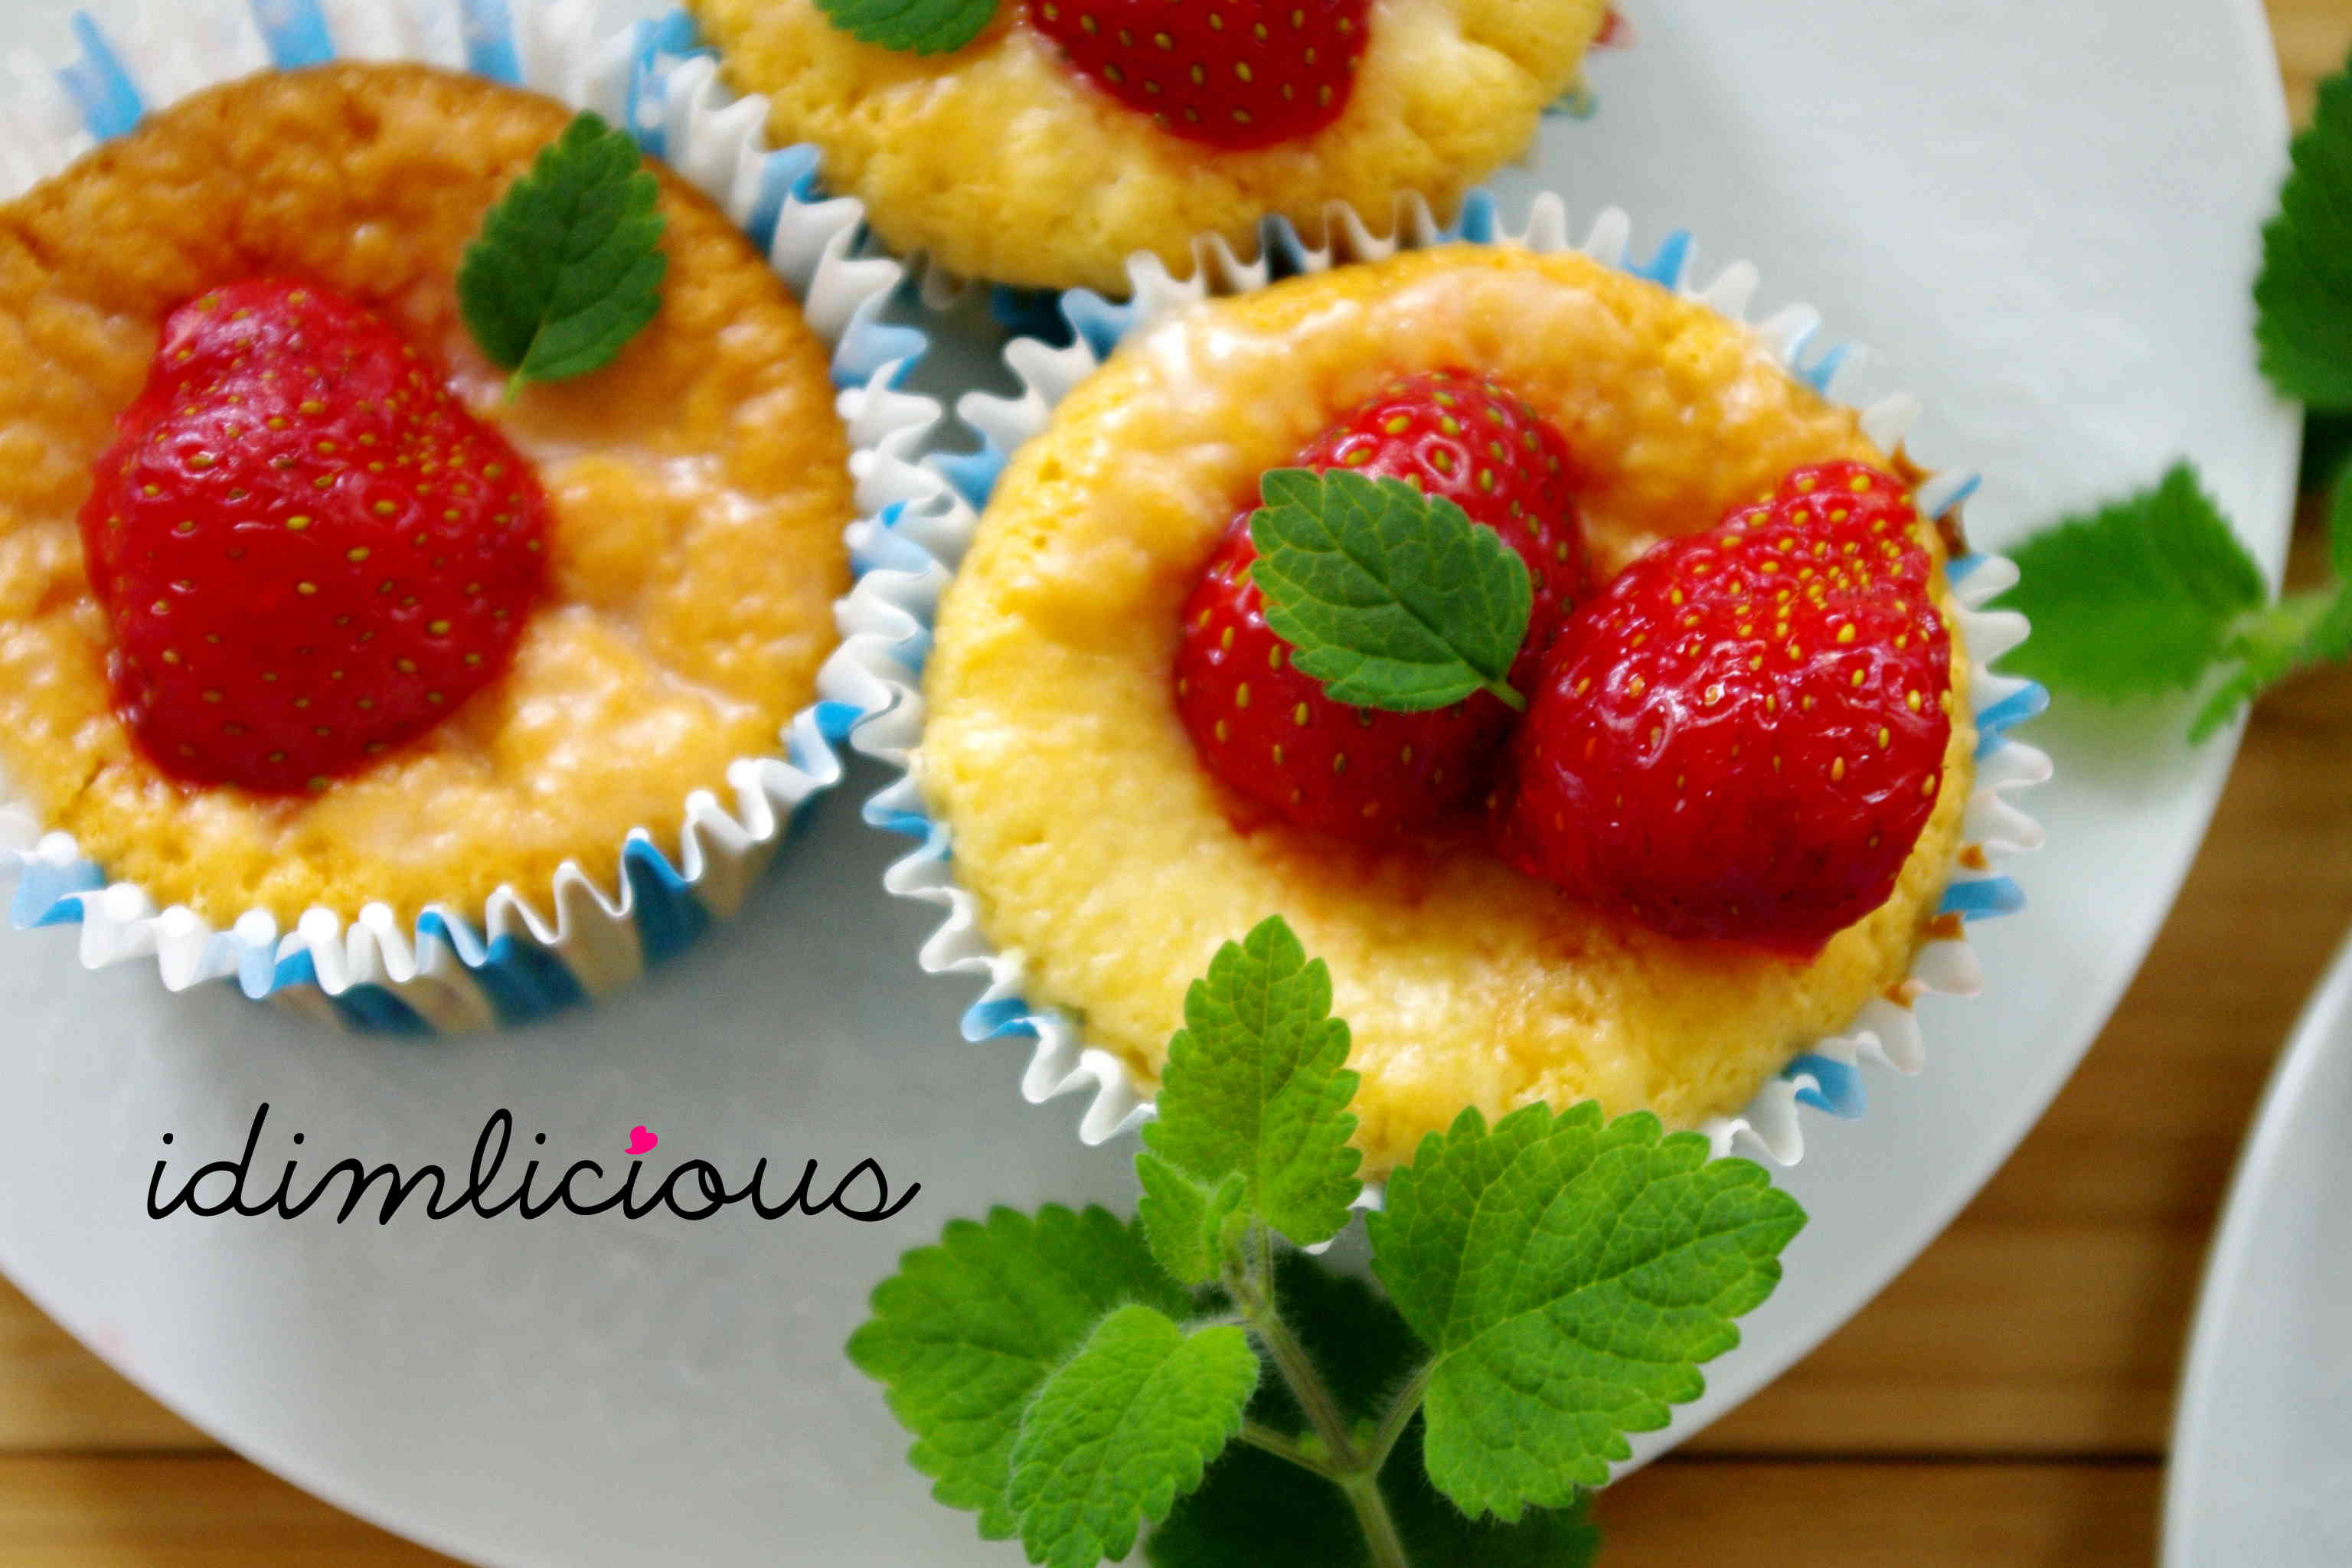 A walk on the strawberry field – Part 5: fluffy crème fraîche muffins